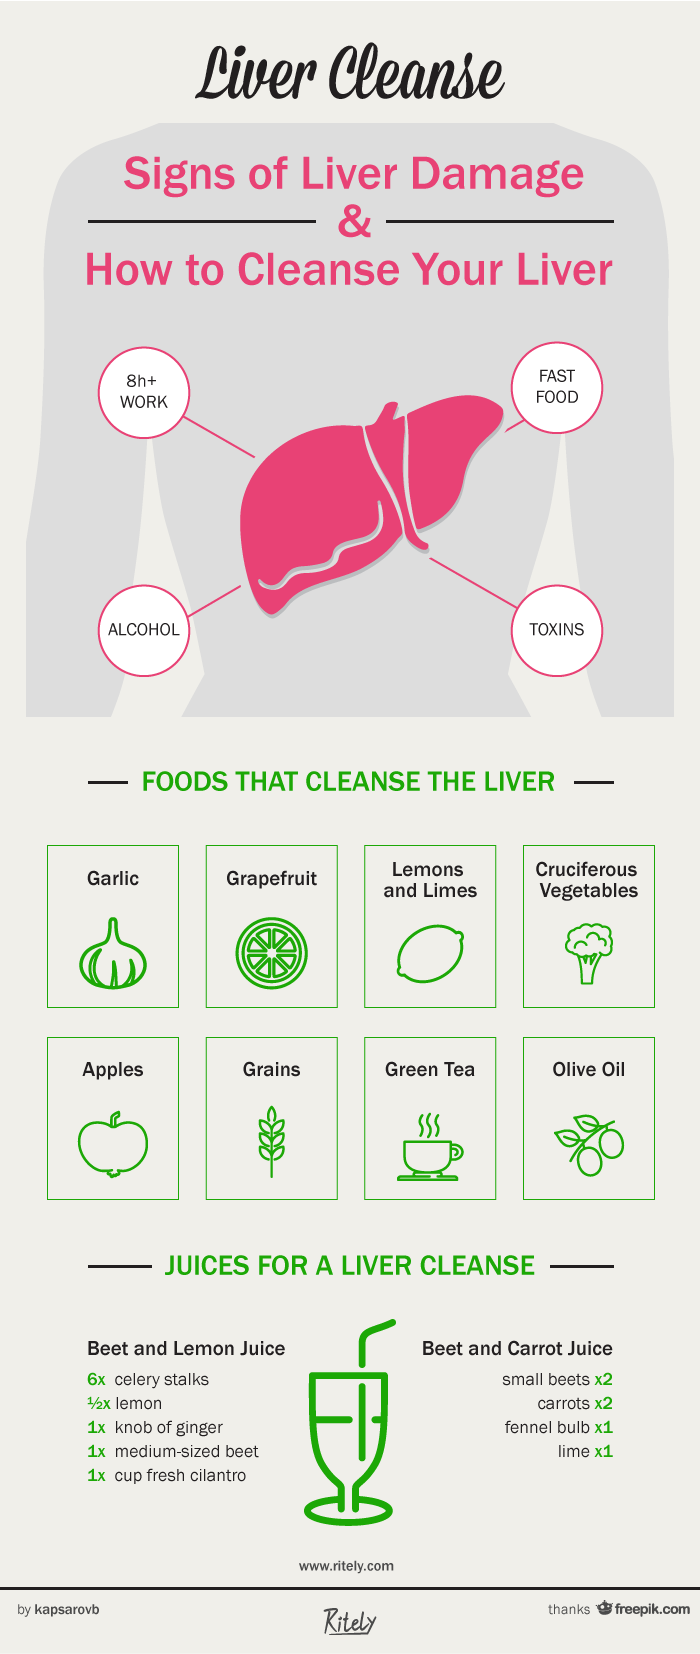 Liver health signs